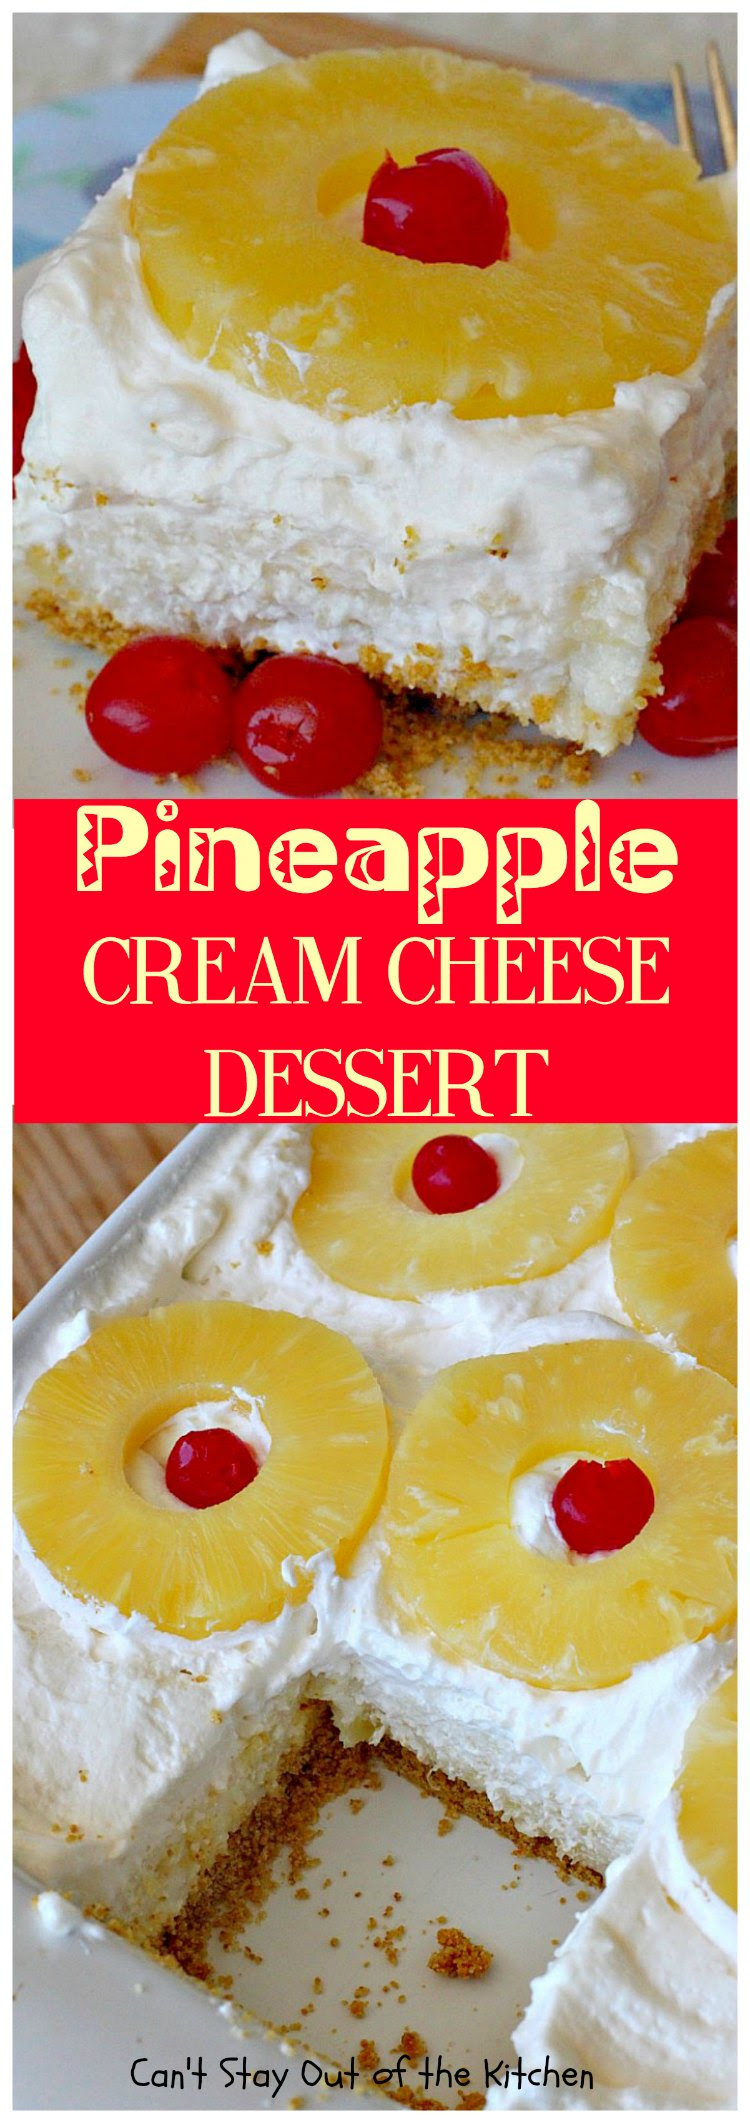 Pineapple Cream Cheese Dessert - Can't Stay Out of the Kitchen